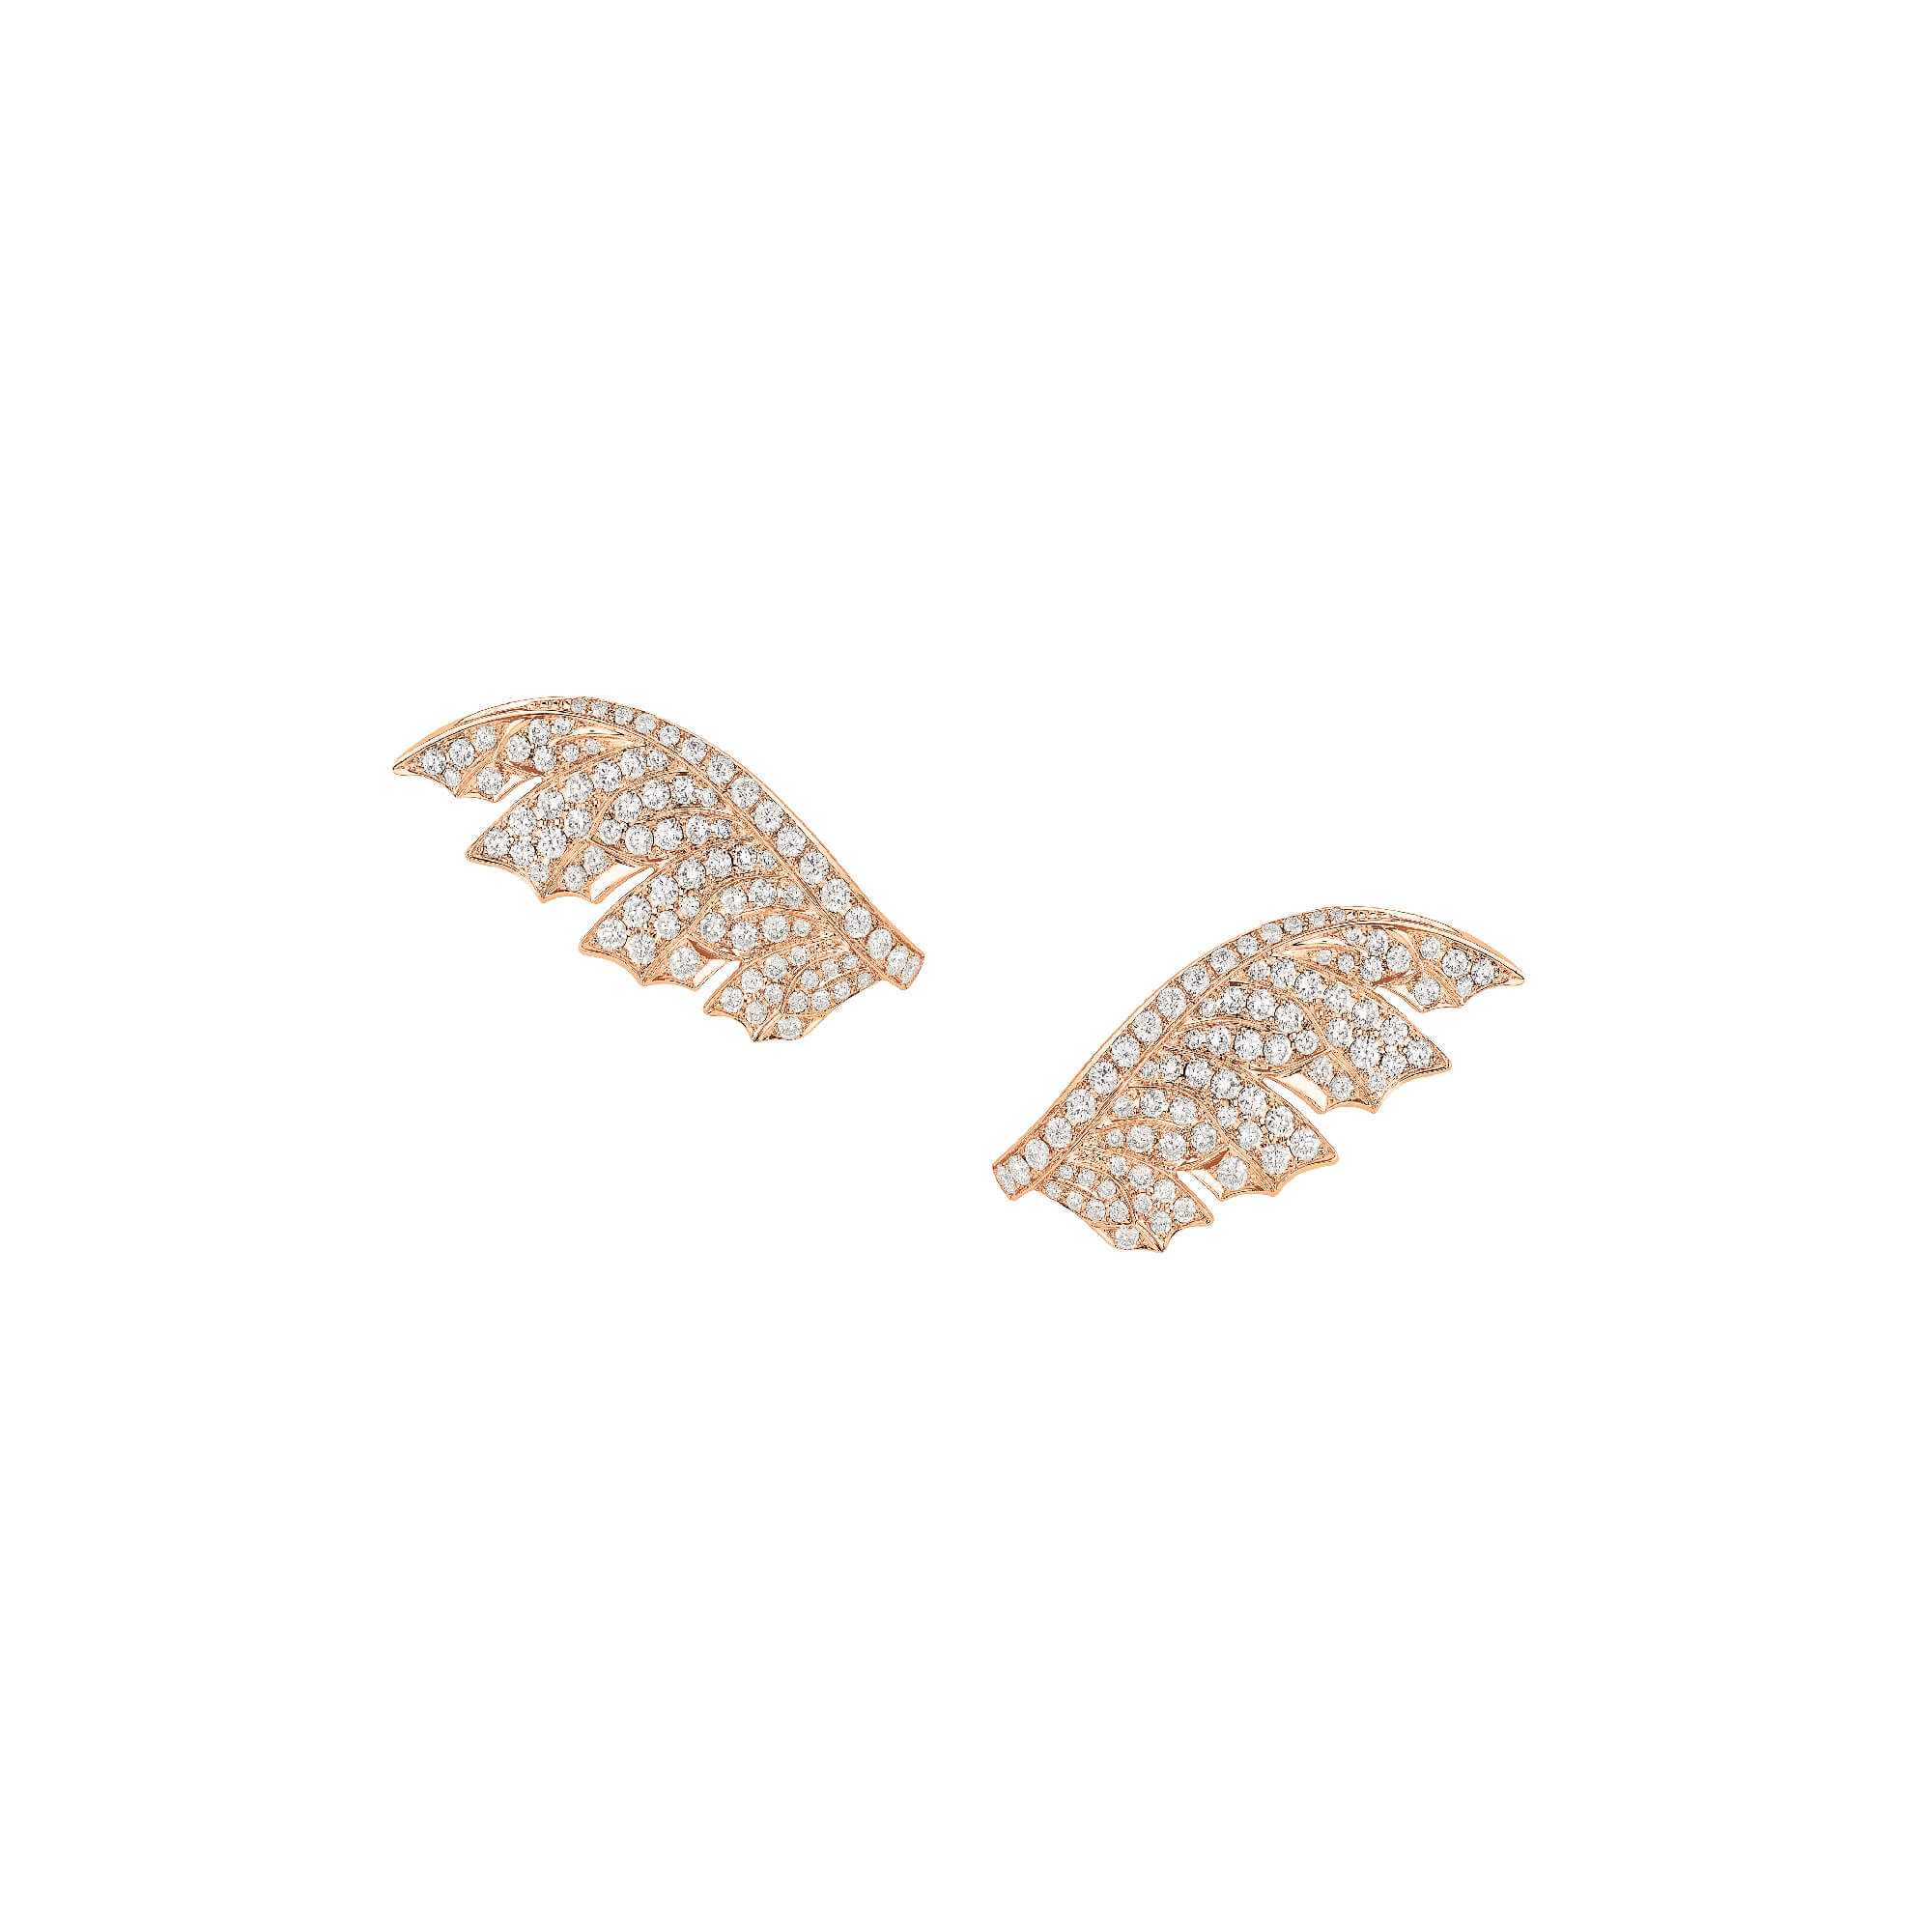 Rose Gold Pavé Feather Earrings With White Diamonds | Magnipheasant